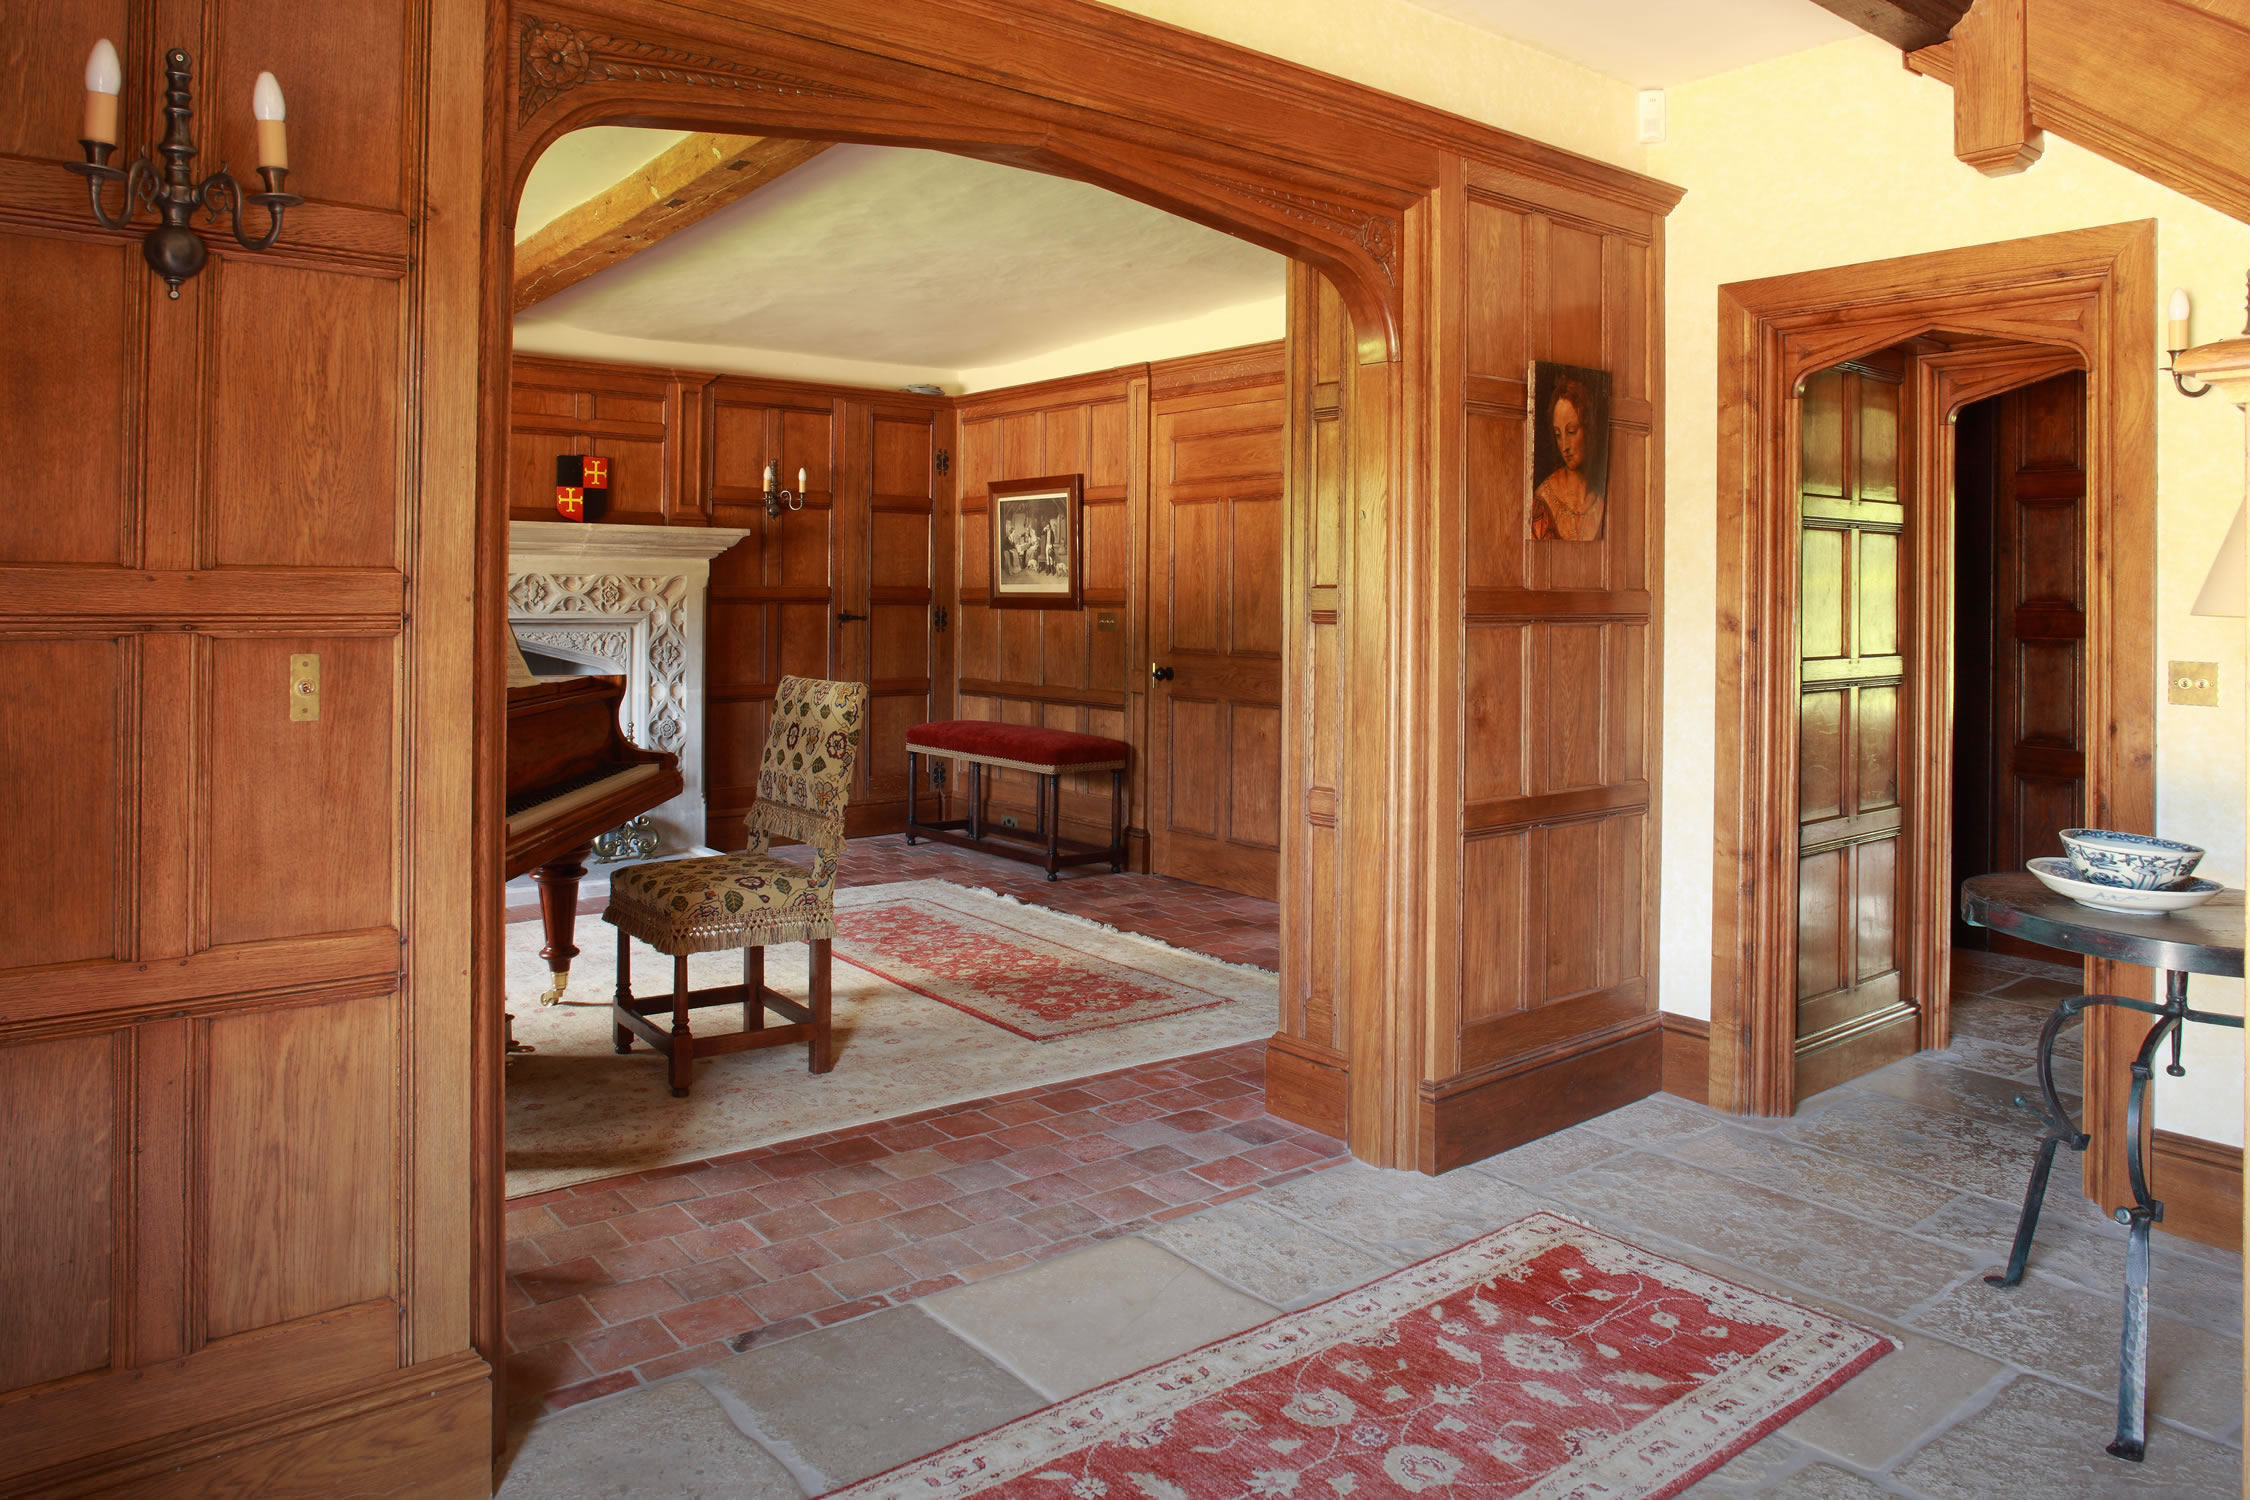 Oak panelled entrance hall with Tudor arched opening